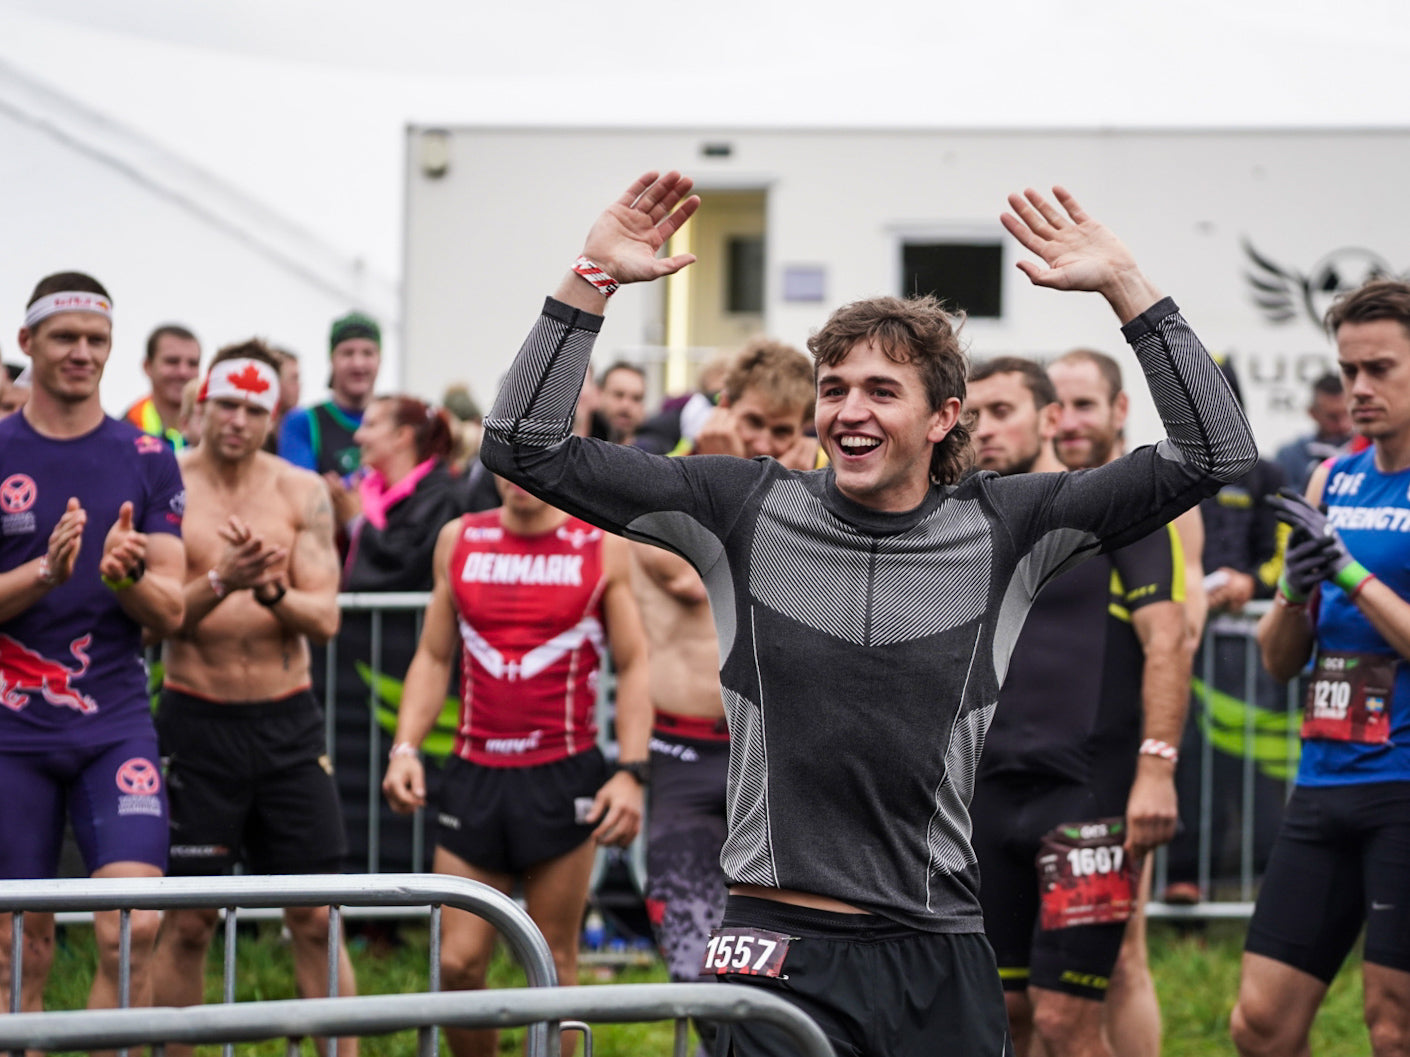 Great support at OCRWC 2019 - Brentwood, UK